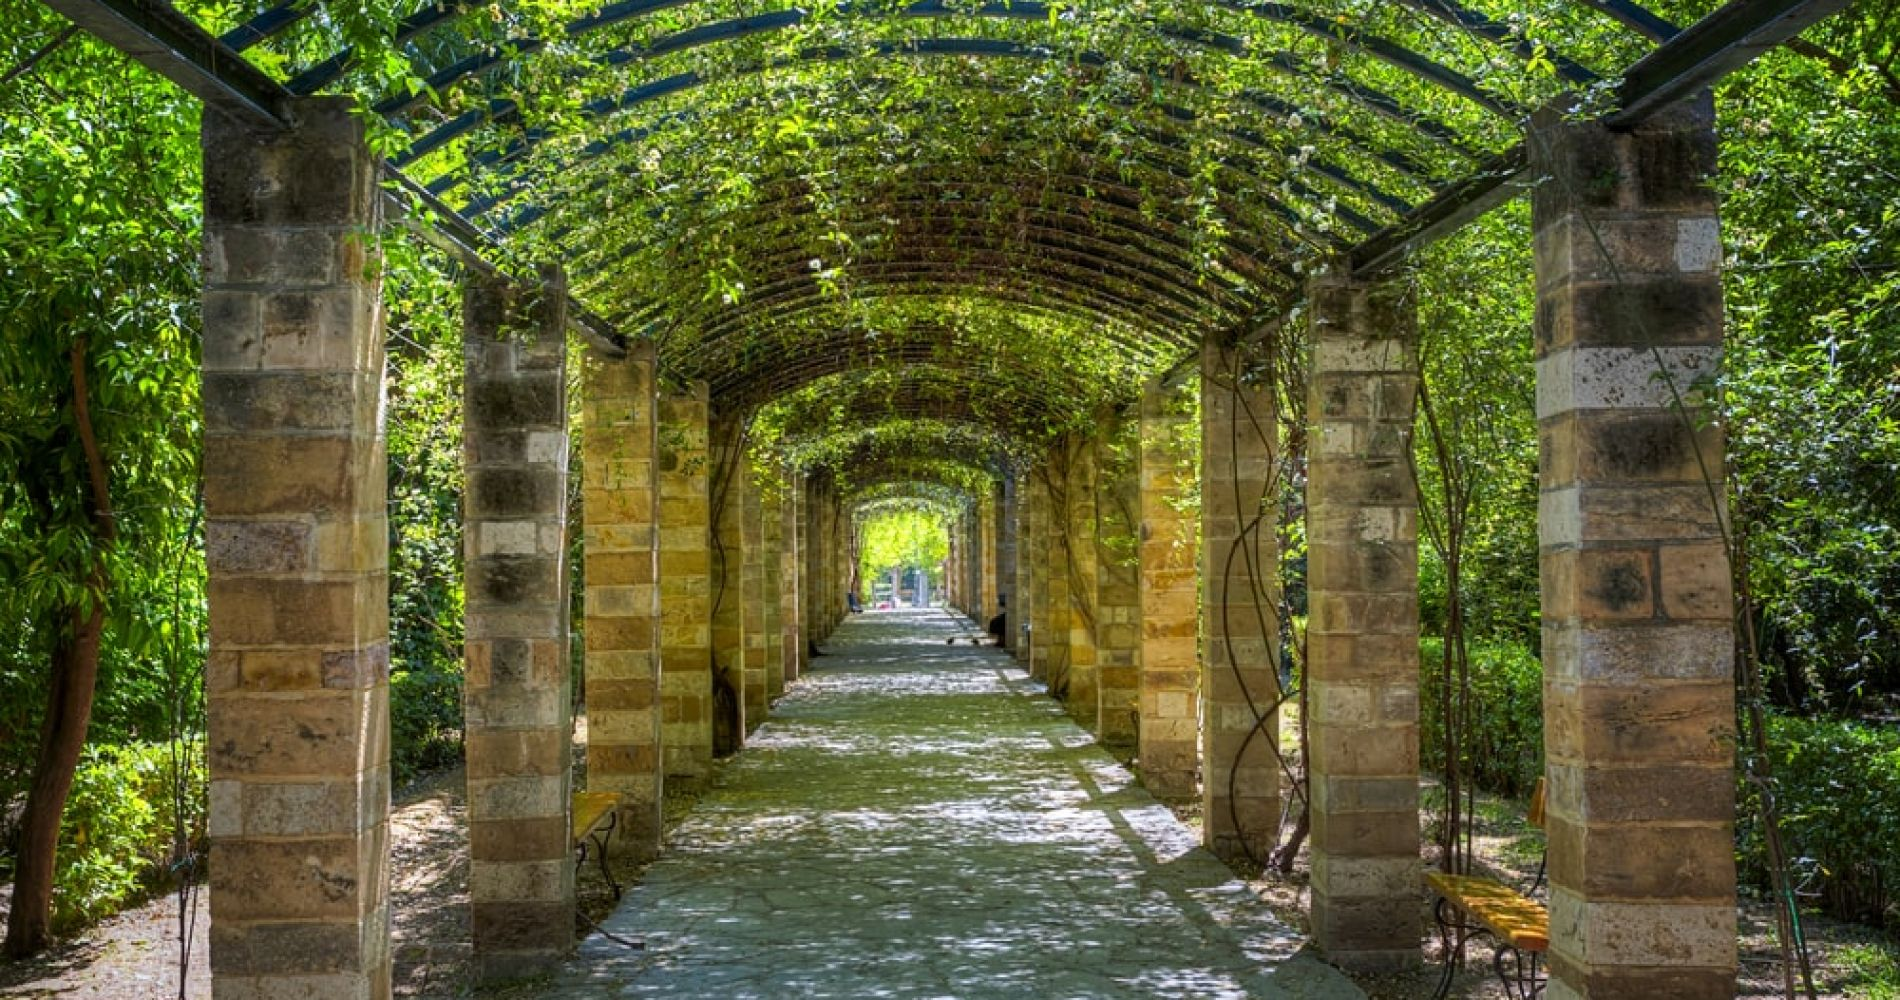 Explore the National Garden in Athens